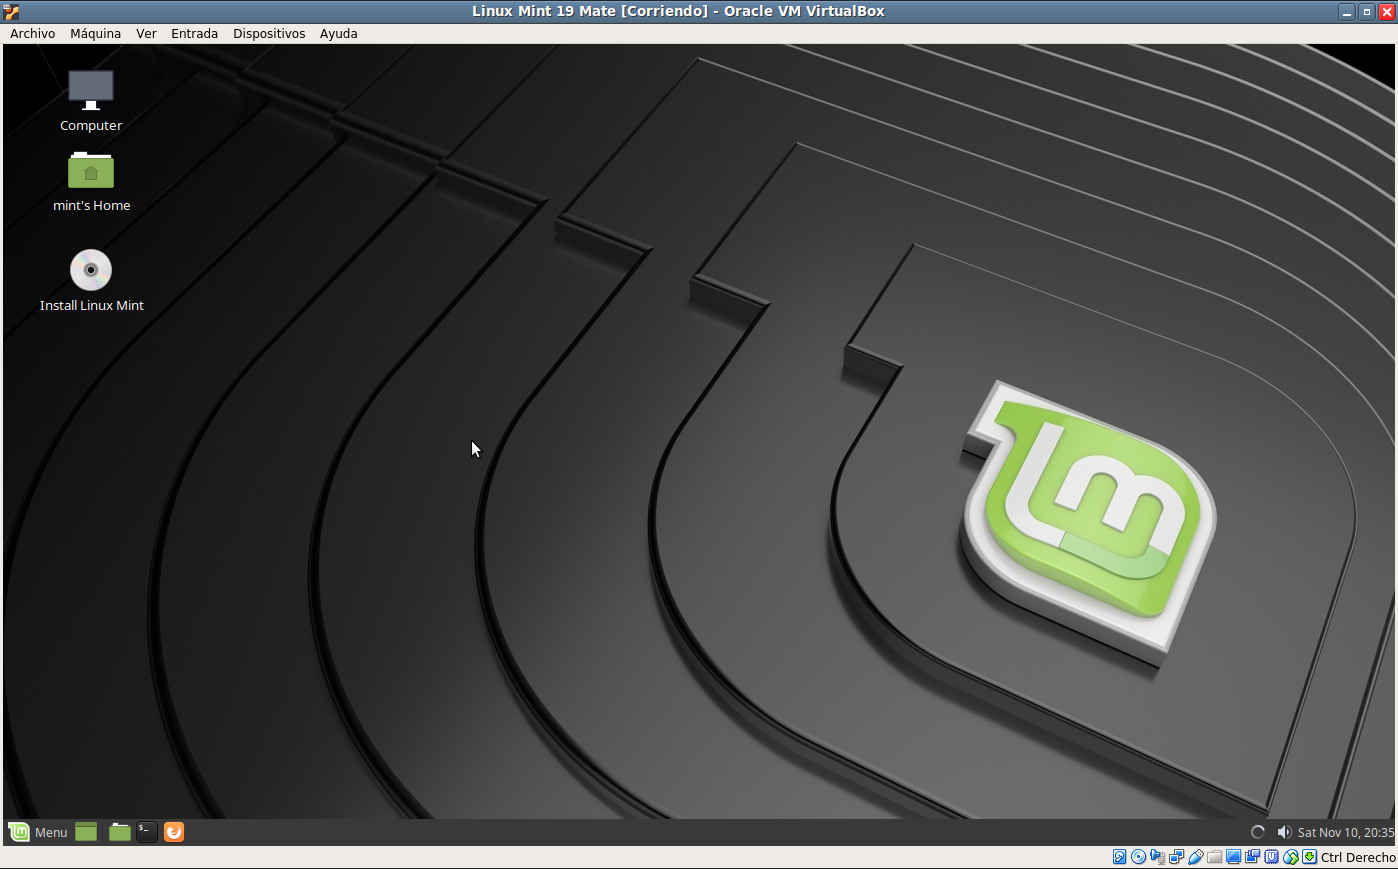 Pantallazo-Linux Mint 19 Mate [Corriendo] - Oracle VM VirtualBox.jpg